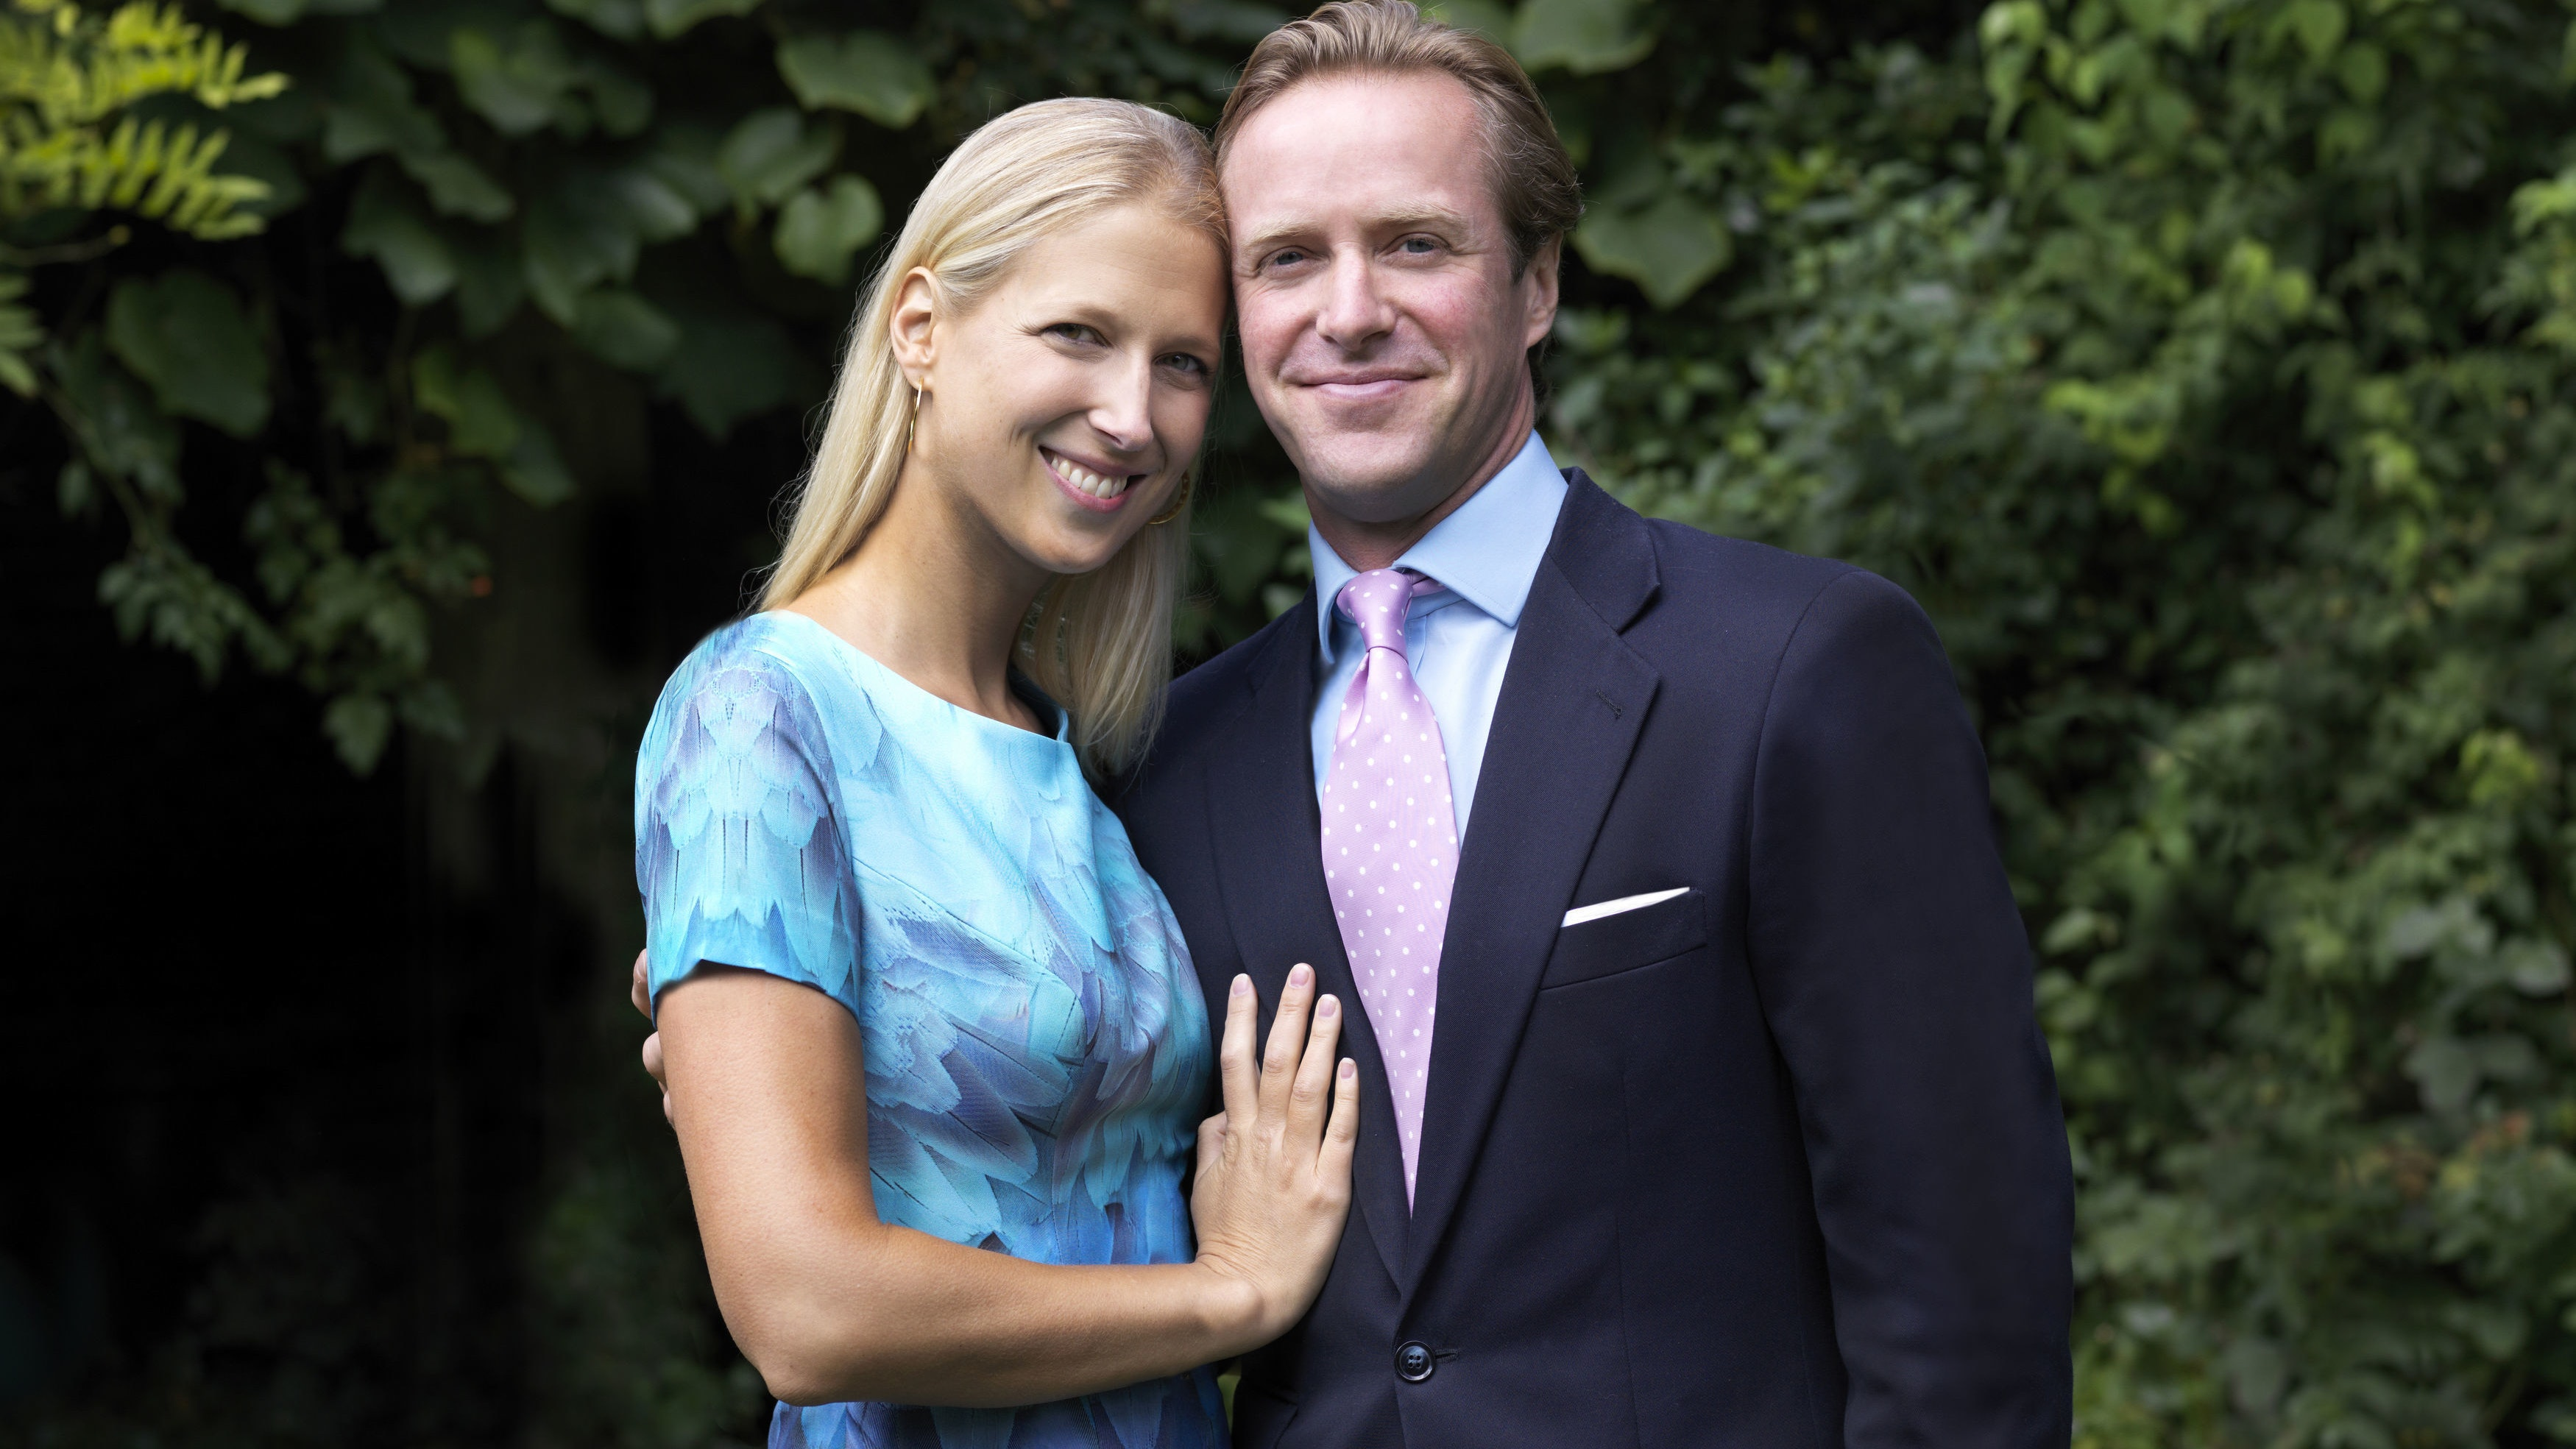 Cake, speeches and more: Inside Lady Gabriella Windsor's wedding reception